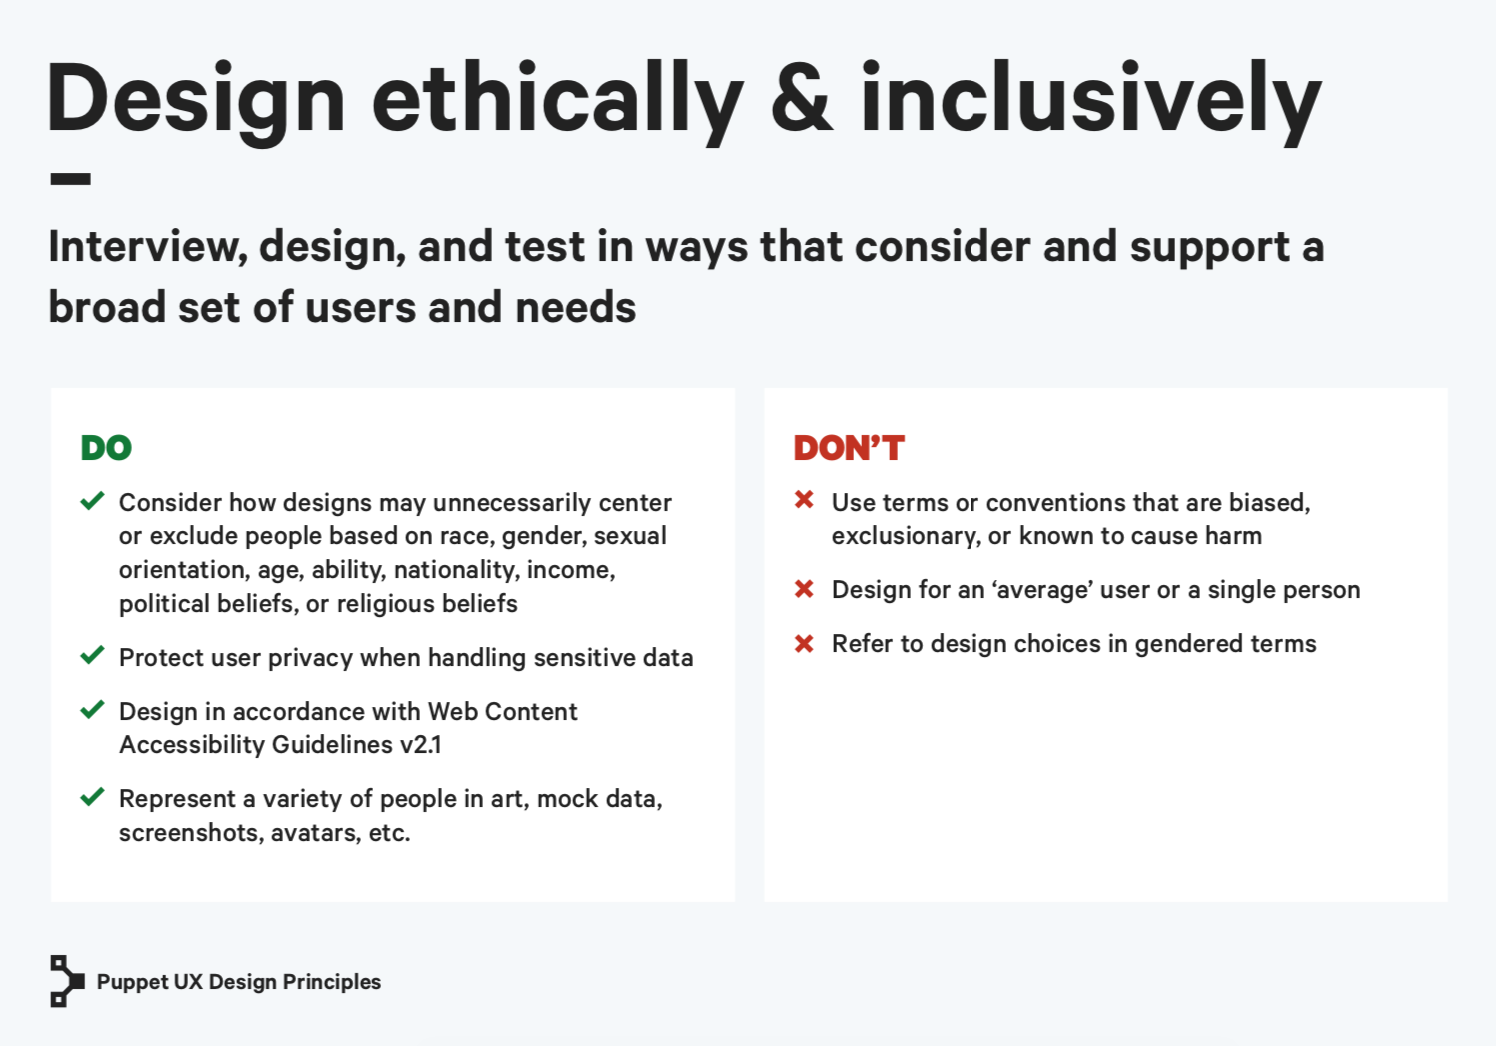 design ethically